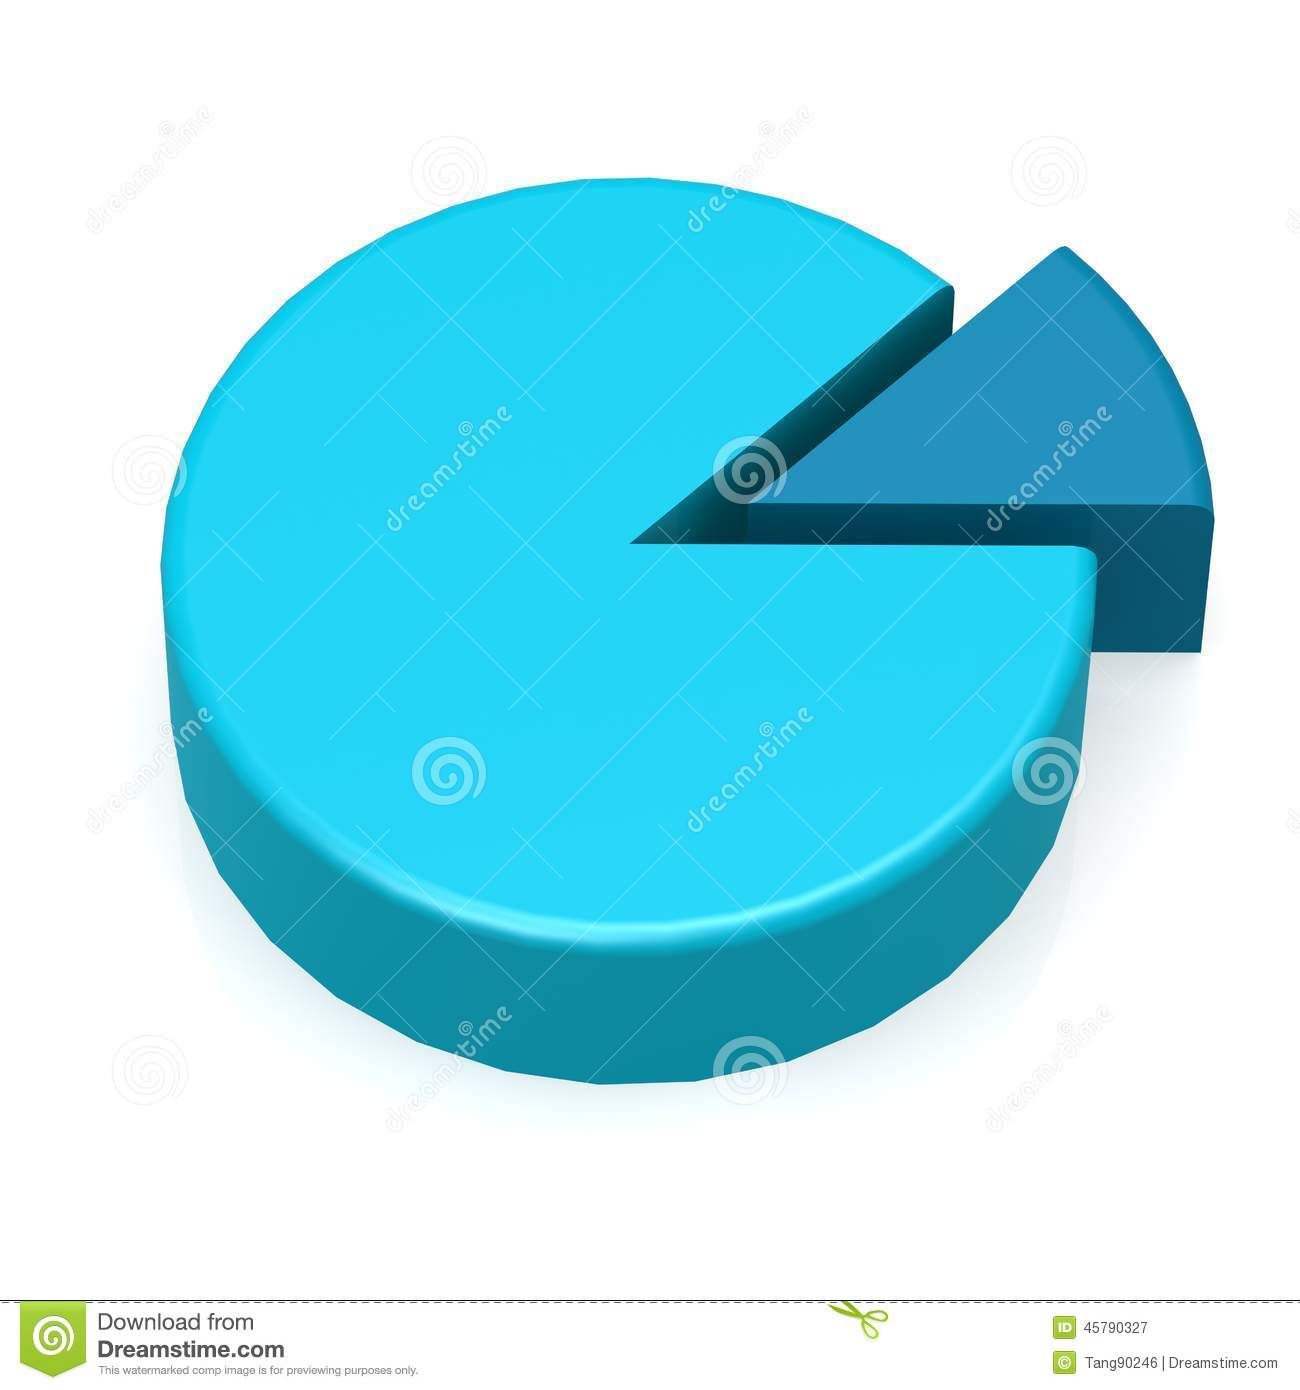 Blue Pie Chart Stock Illustration - Image: 45790327